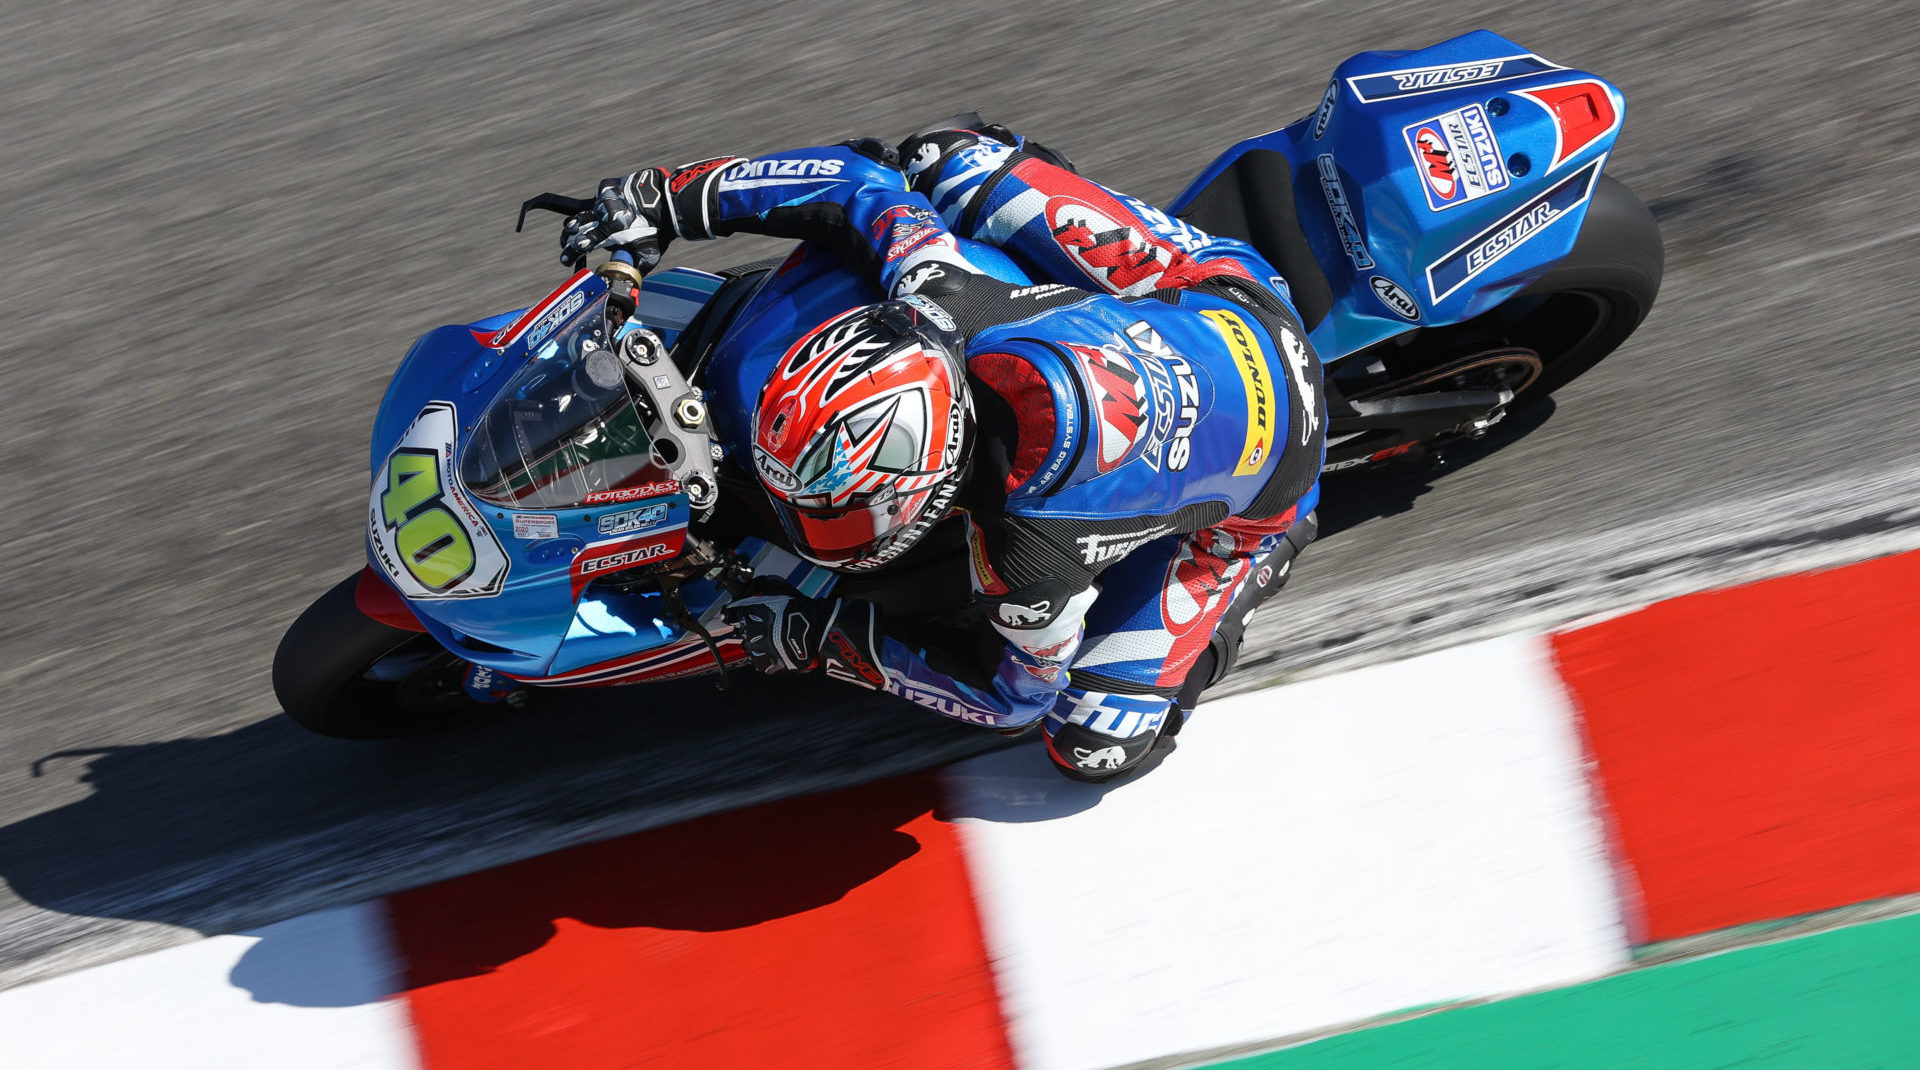 Sean Dylan Kelley (40) took a dominating double win on his GSX-R600 at Laguna Seca. Photo by Brian J. Nelson, courtesy Suzuki Motor of America, Inc.